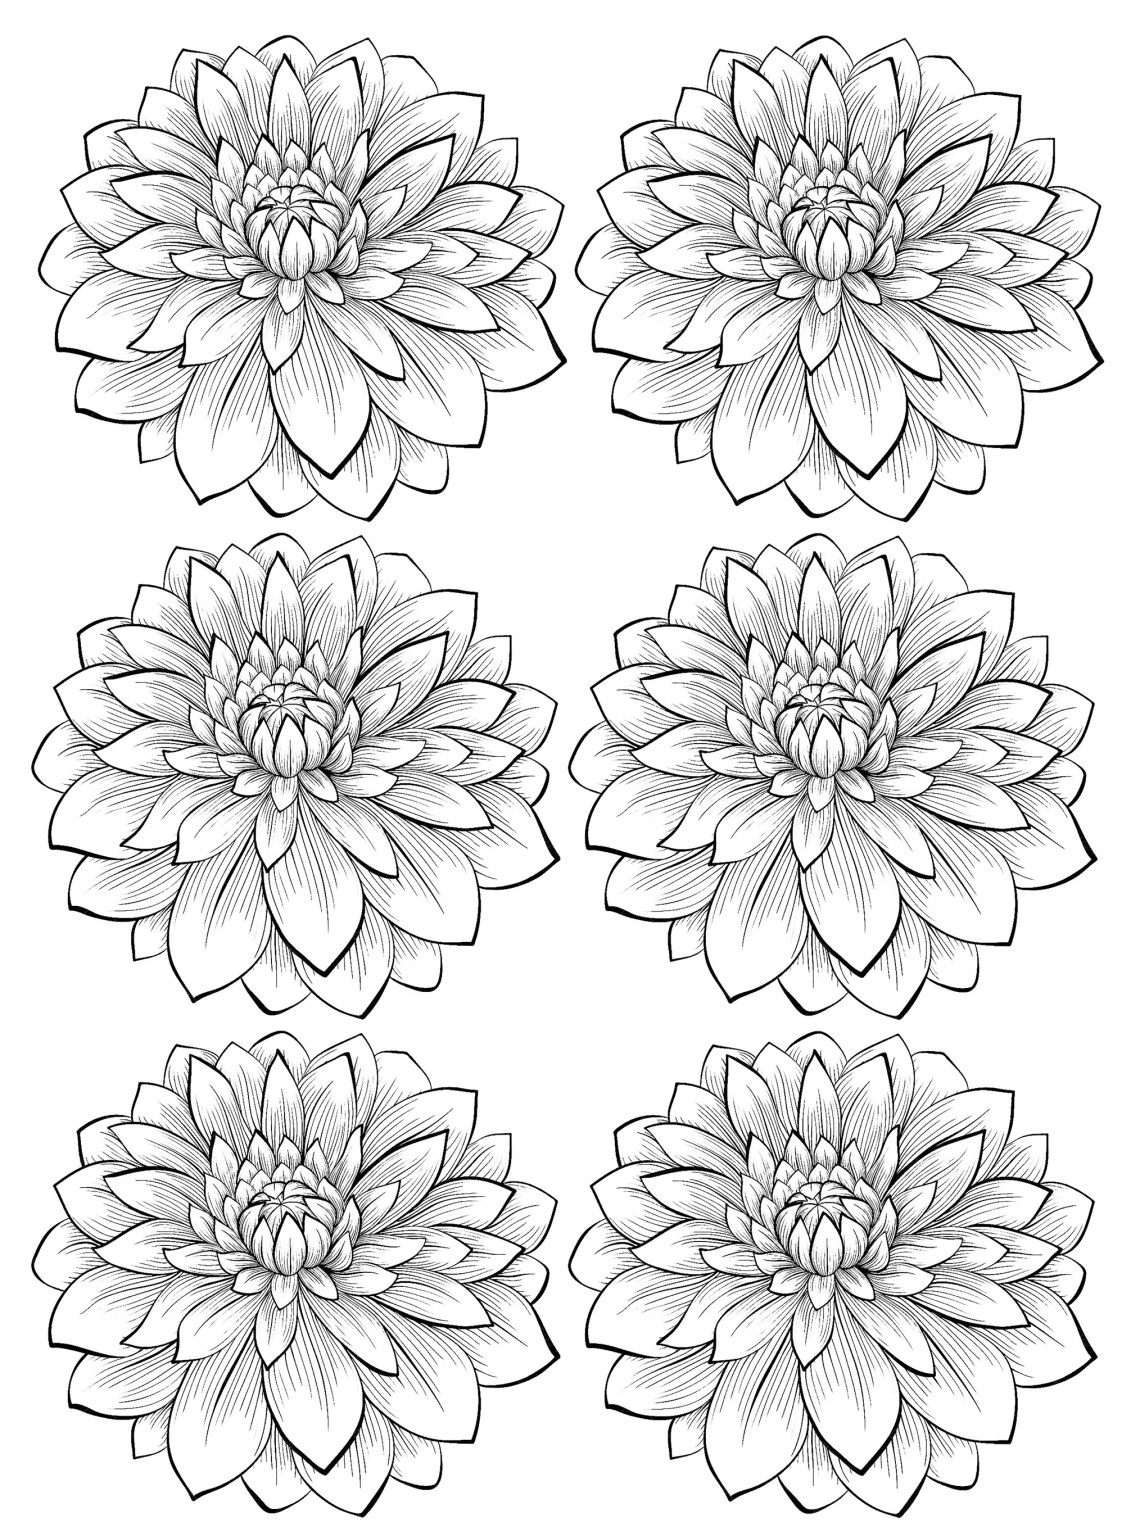 Six dahlia flower - Flowers Adult Coloring Pages | coloring pages for adults flowers